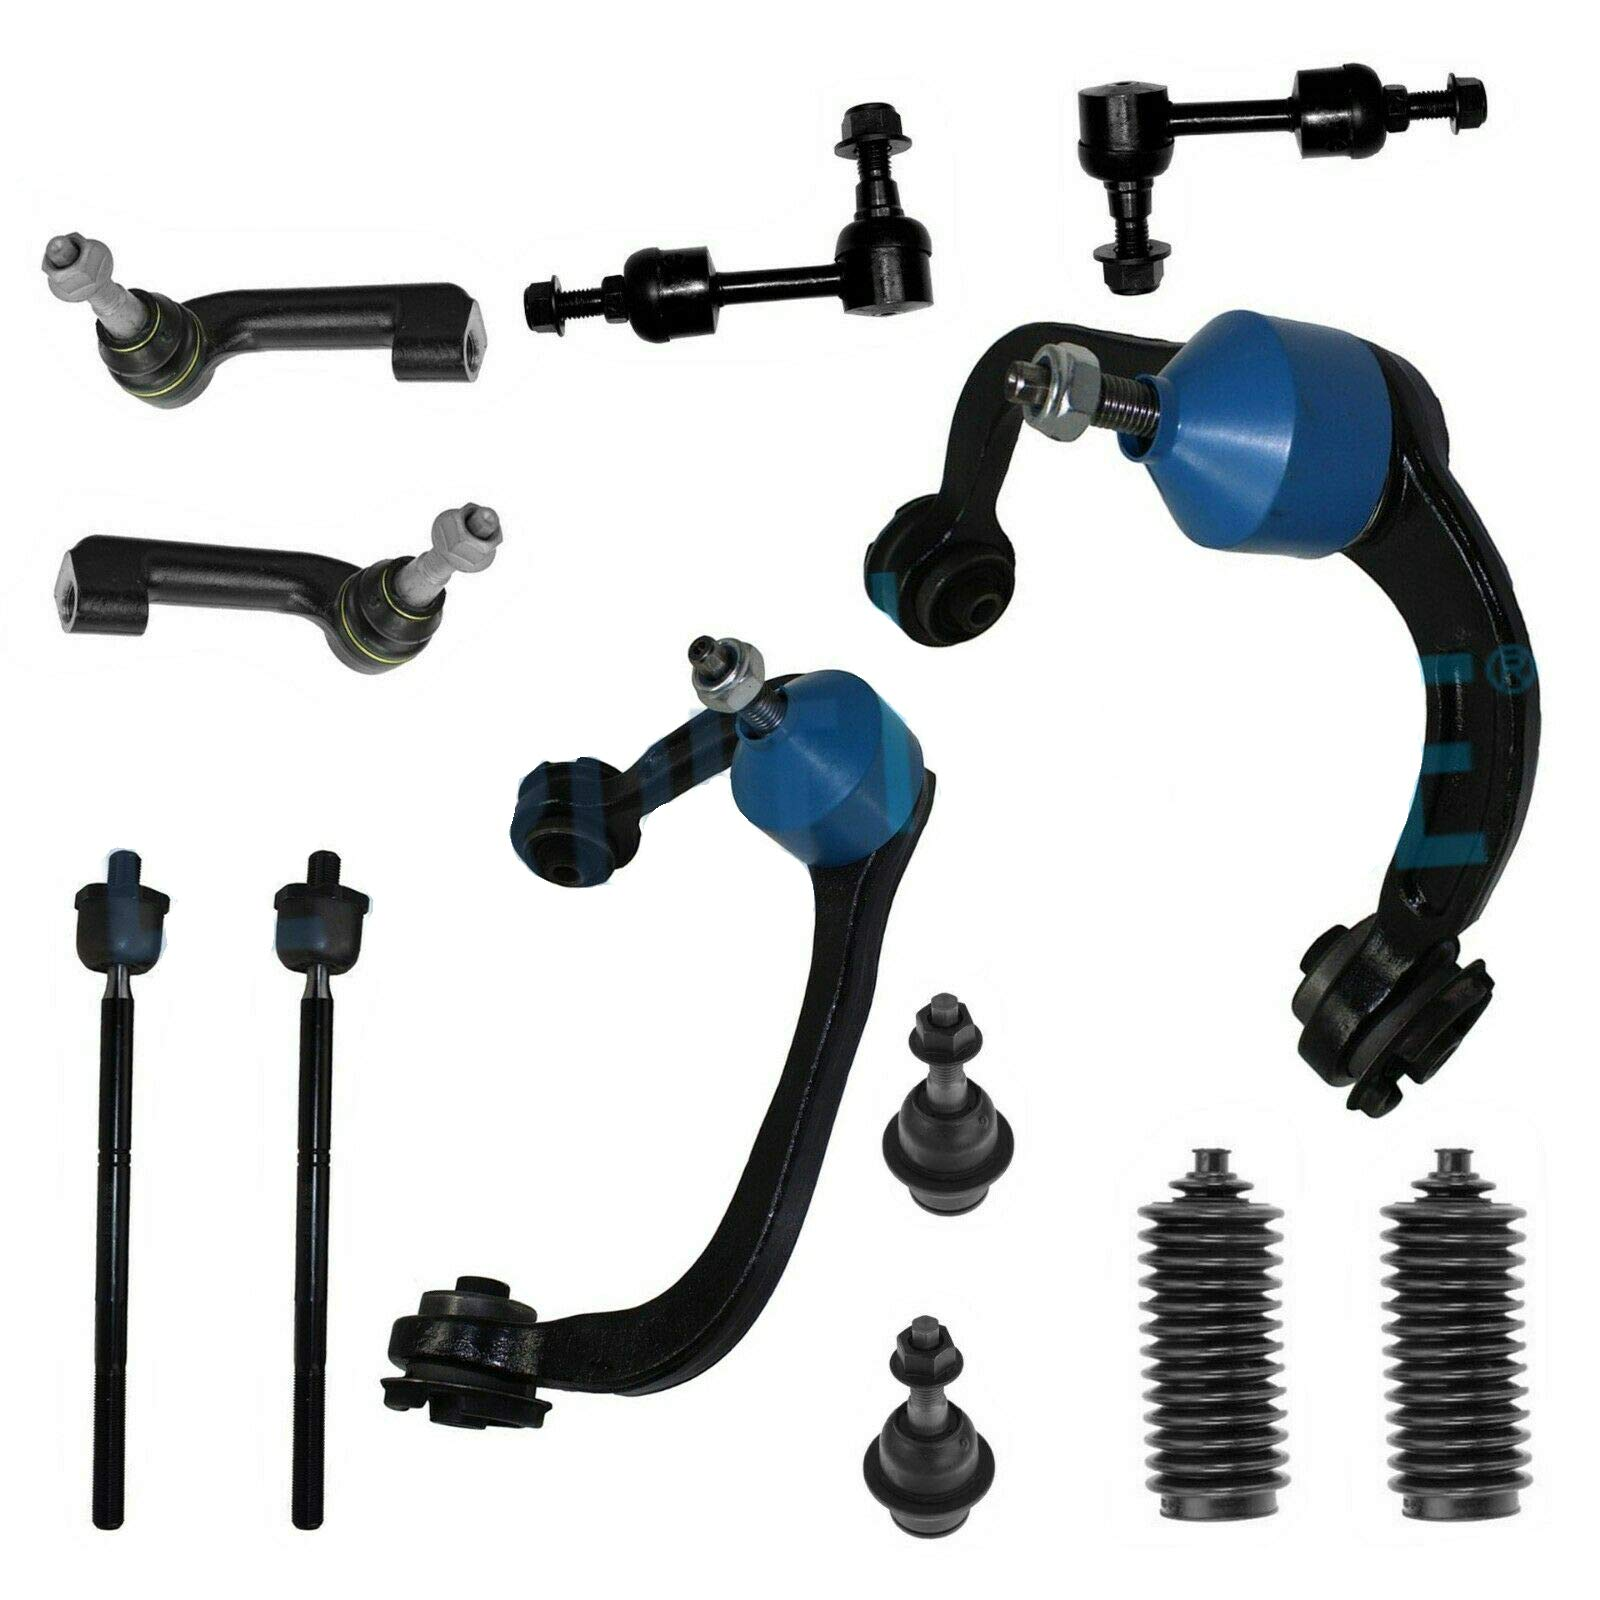 All Detroit Axle Front Upper /& Lower Ball Joints Inner /& Outer Tie Rods/… - 10-Year Warranty- All Complete 8-Piece Front Suspension Kit Toyota 4Runner 4 4 NOT FOR PRE-RUNNER